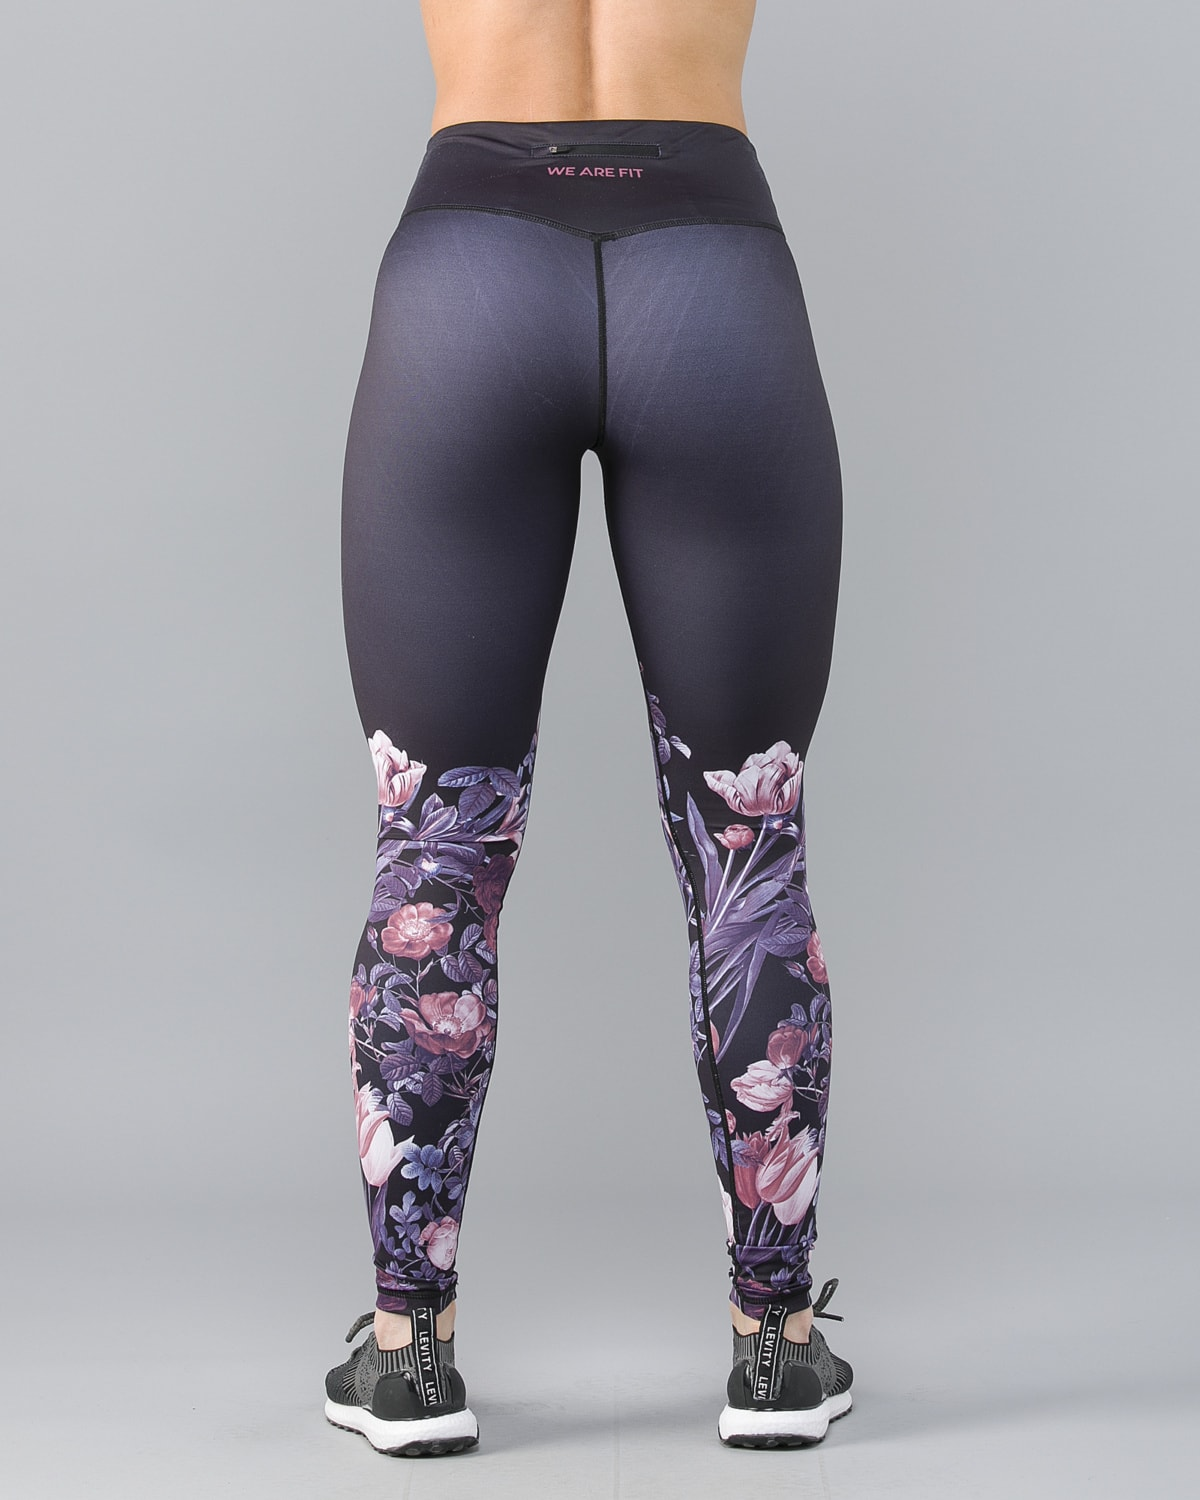 We-Are-Fit-Shea-Tights2